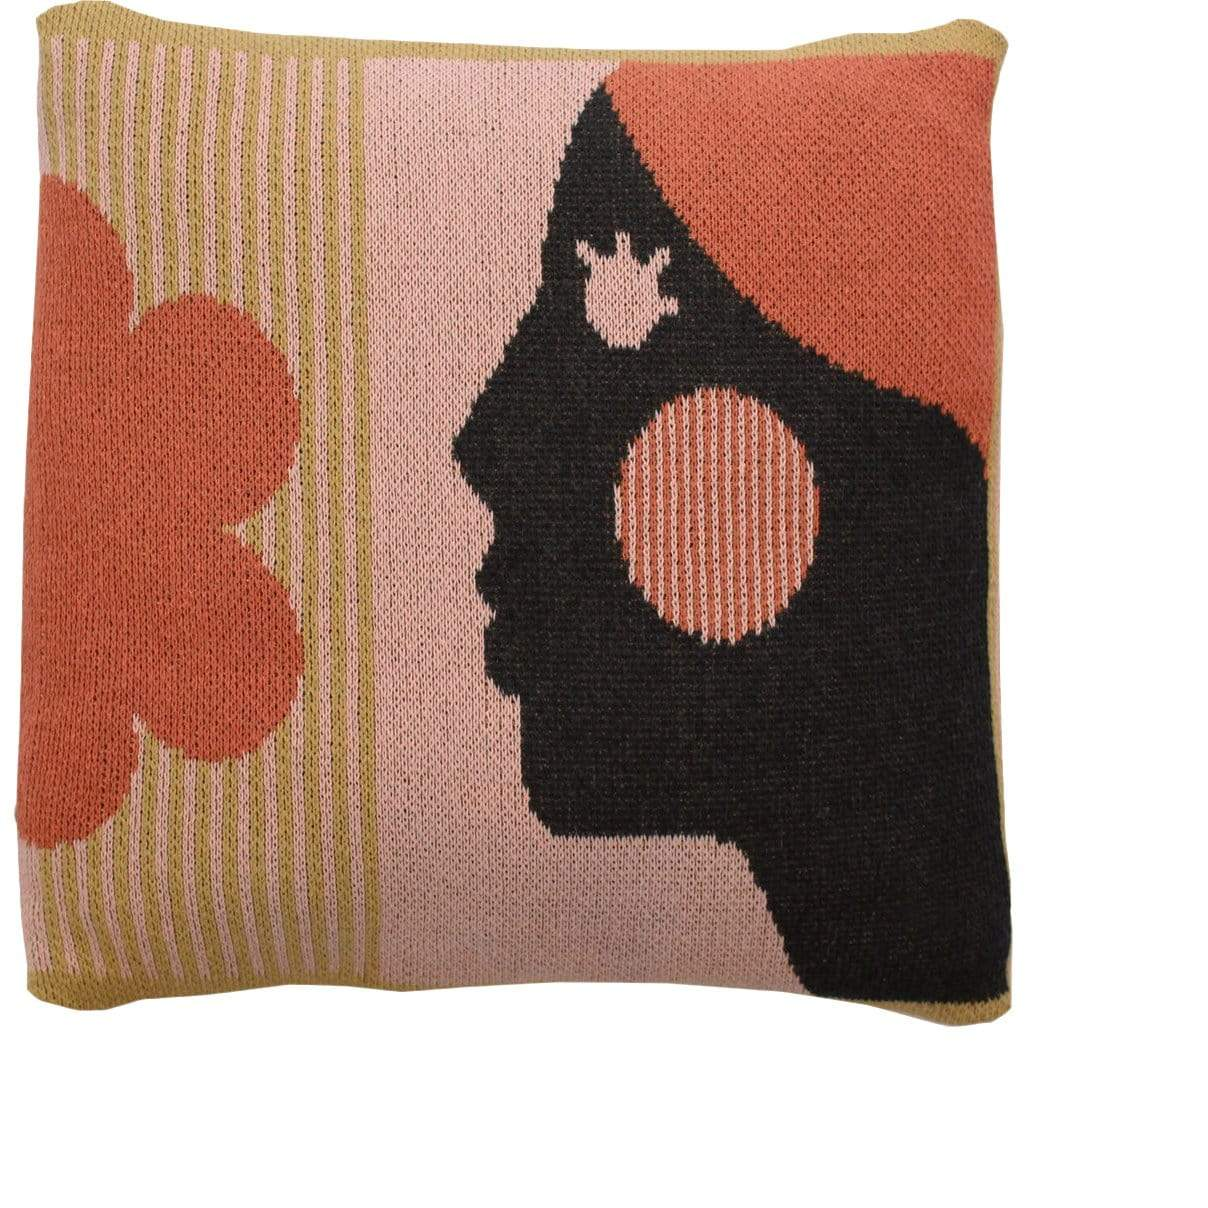 DittoHouse Cushions + Throws Courageous Woman Pillow Cover